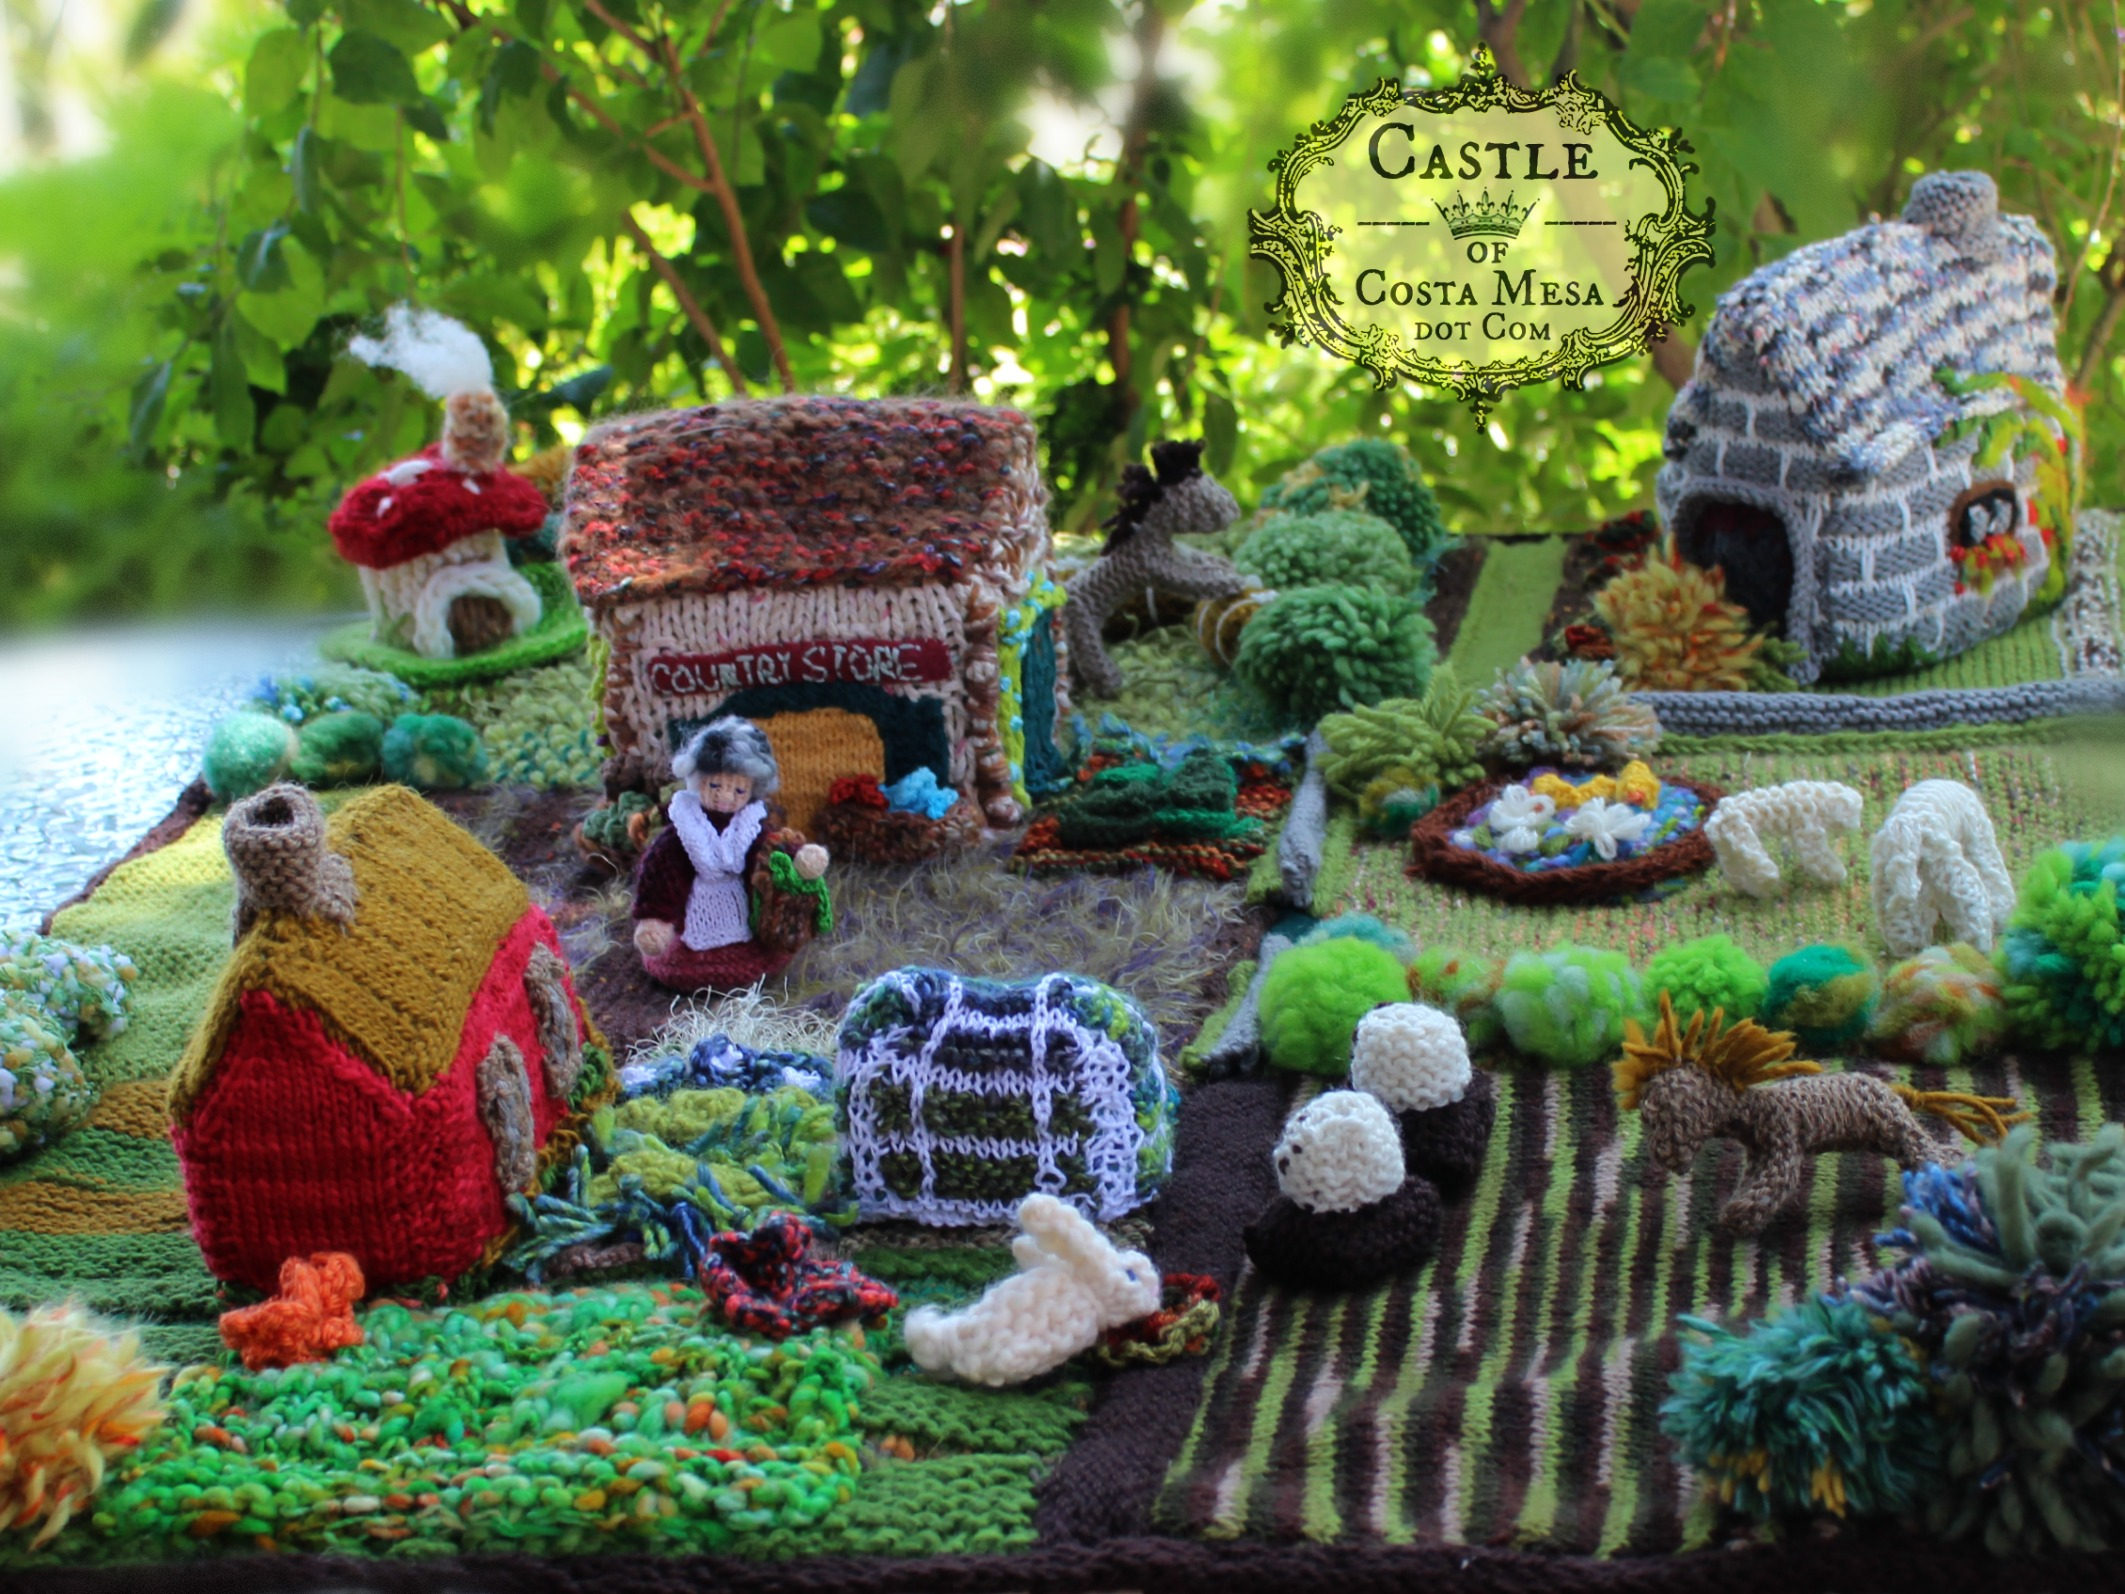 1529 150527 country store toadstool cottage bunny sheep